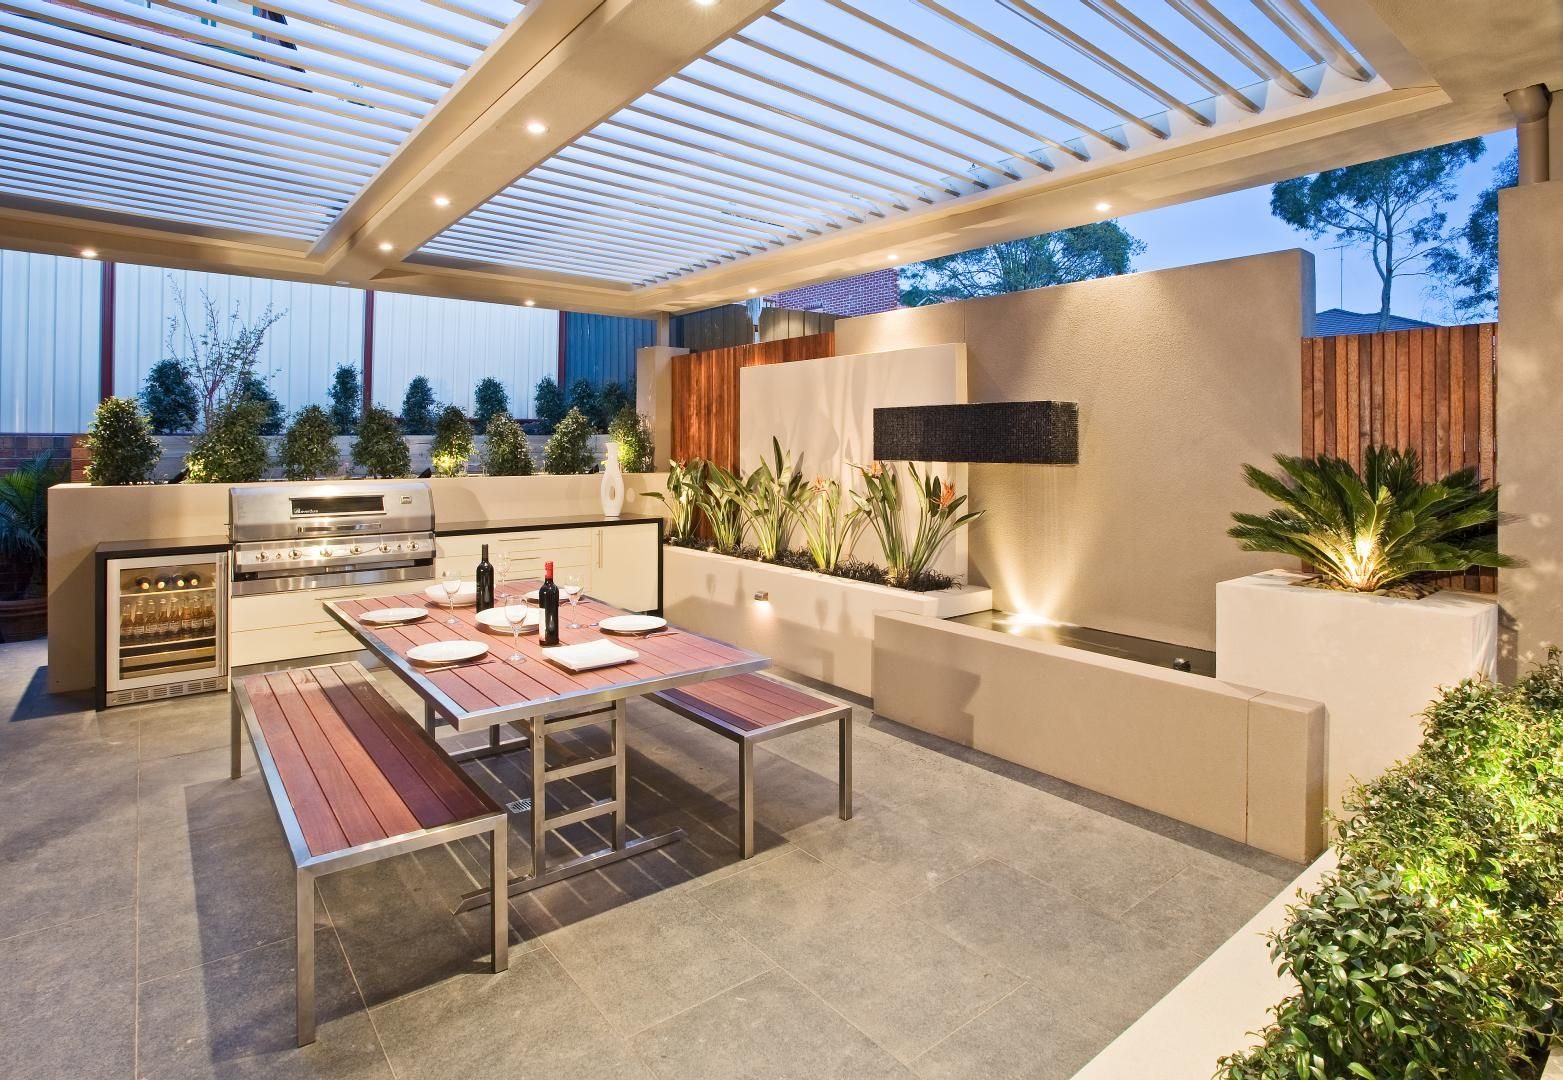 Outdoor entertaining area. Project by COS Design ... on Small Backyard Entertainment Area Ideas id=22880